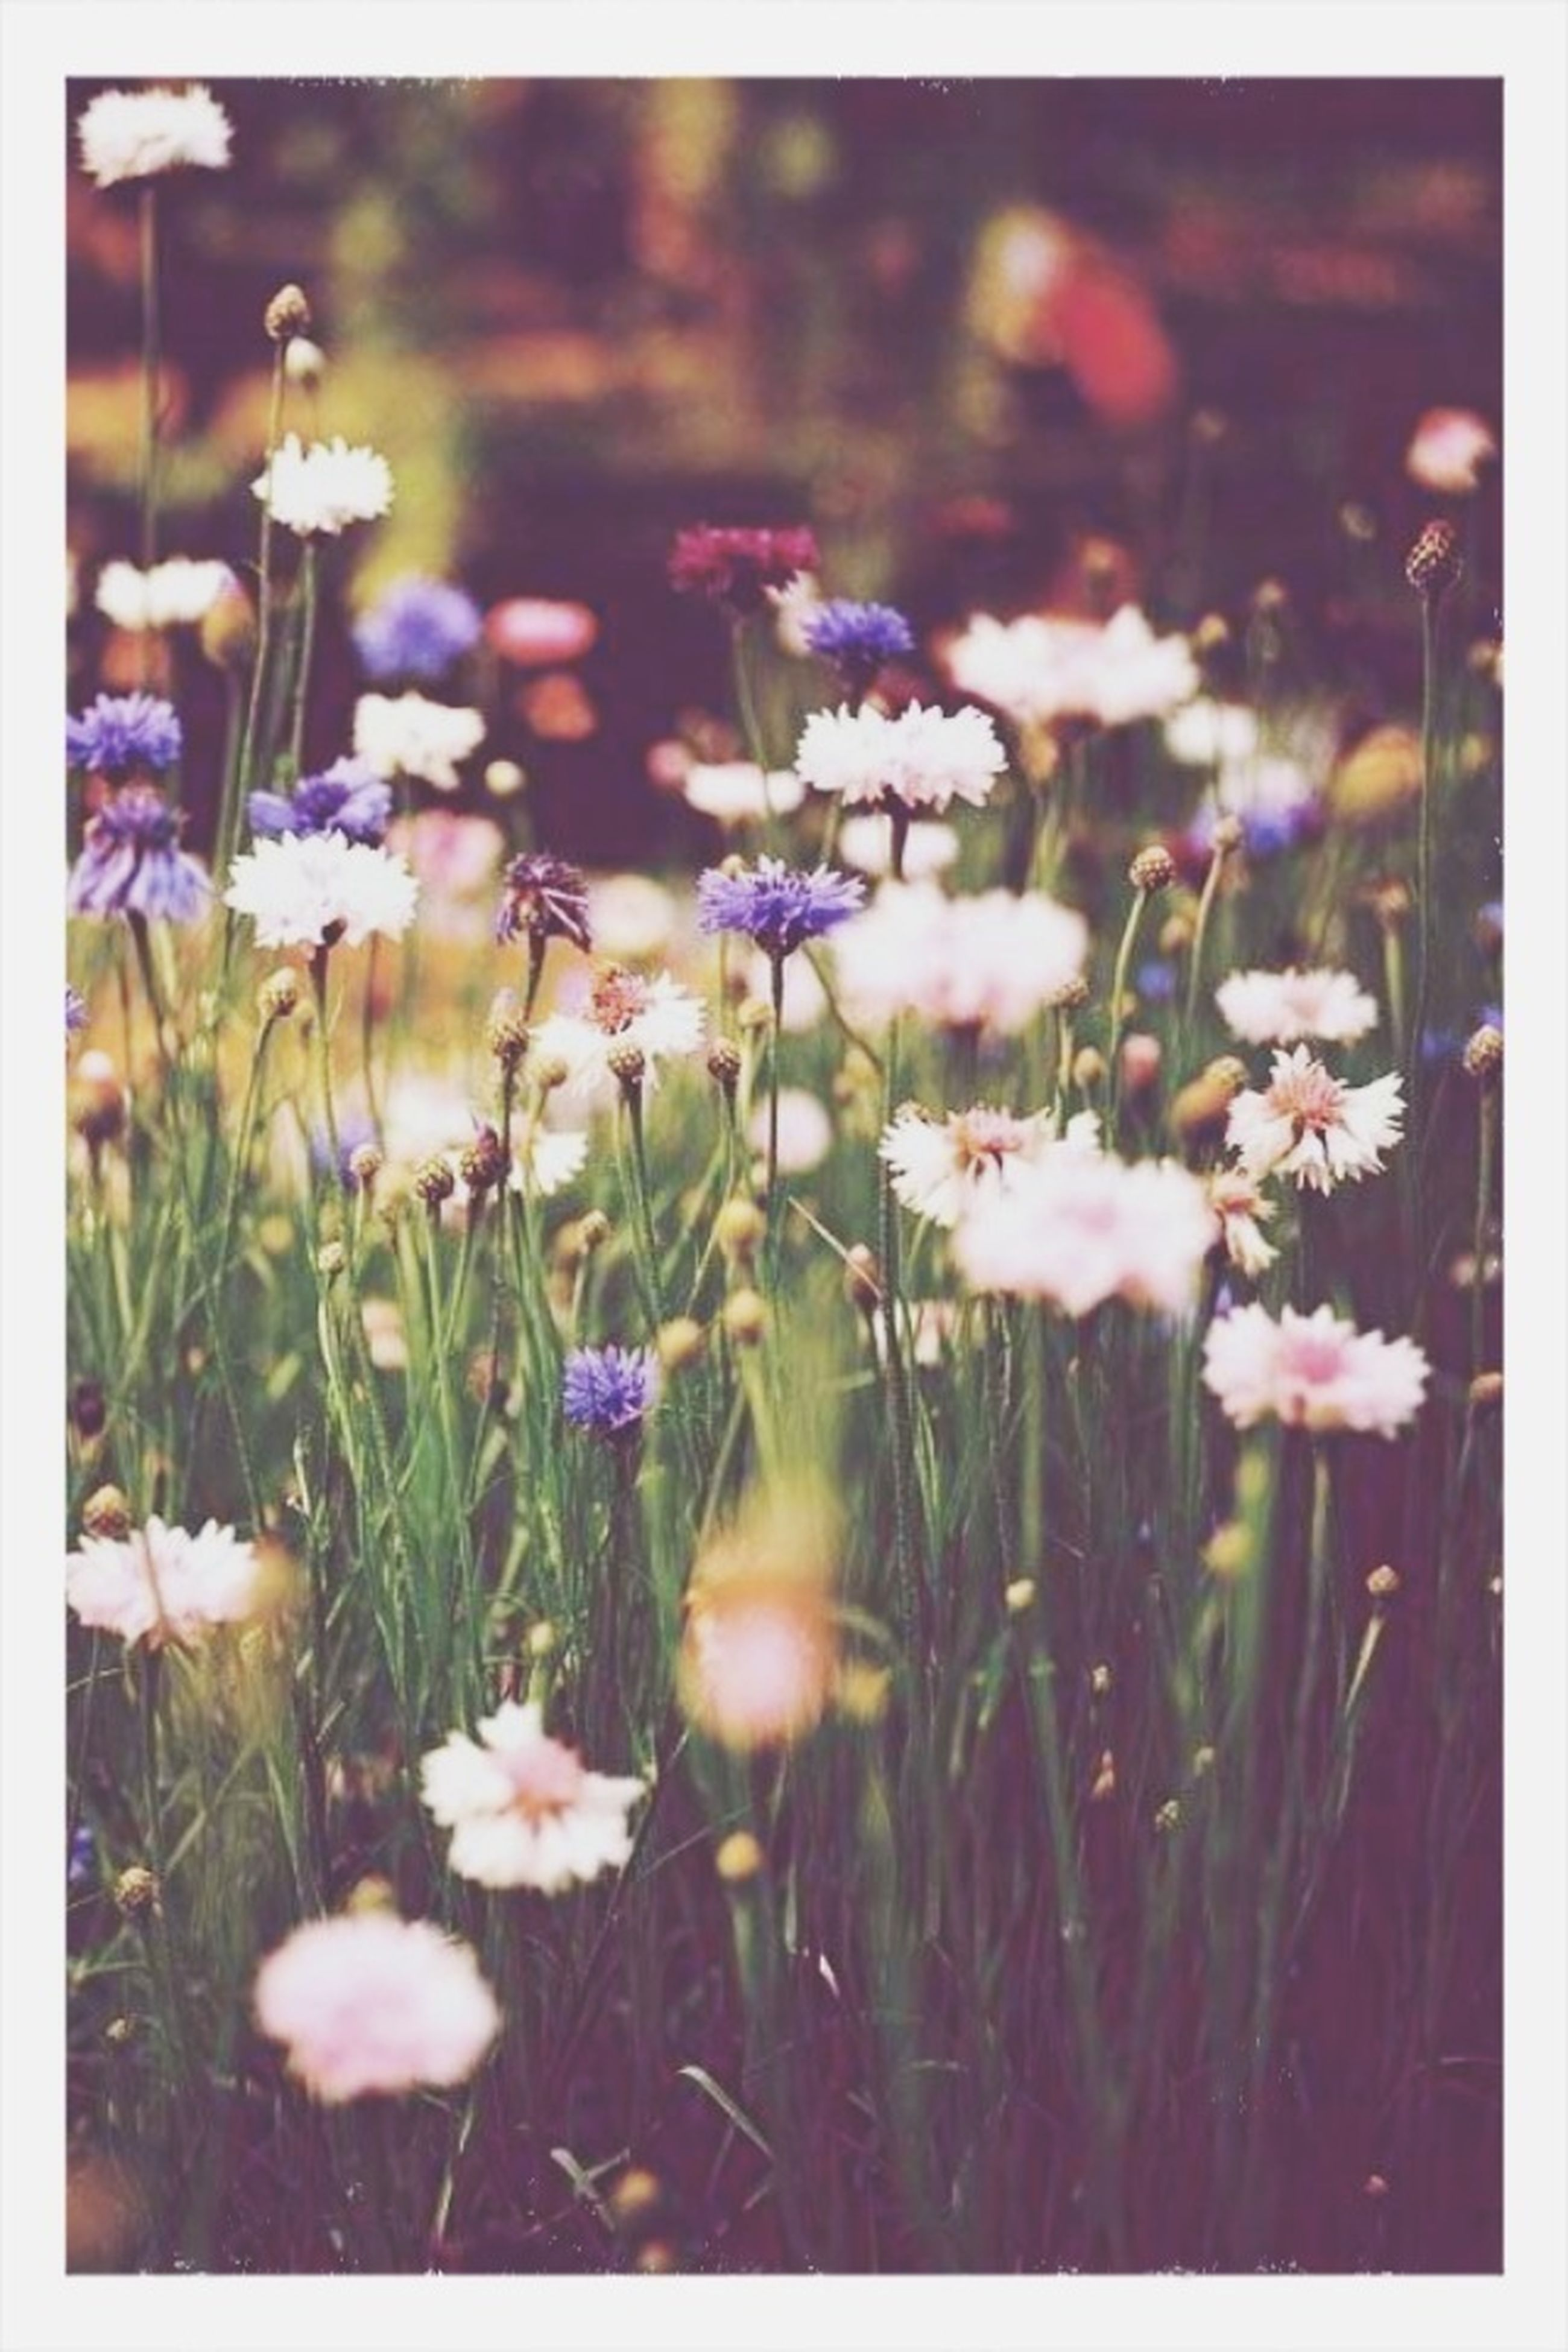 flower, freshness, growth, fragility, transfer print, field, beauty in nature, plant, auto post production filter, nature, blooming, petal, flower head, stem, focus on foreground, grass, wildflower, white color, in bloom, selective focus